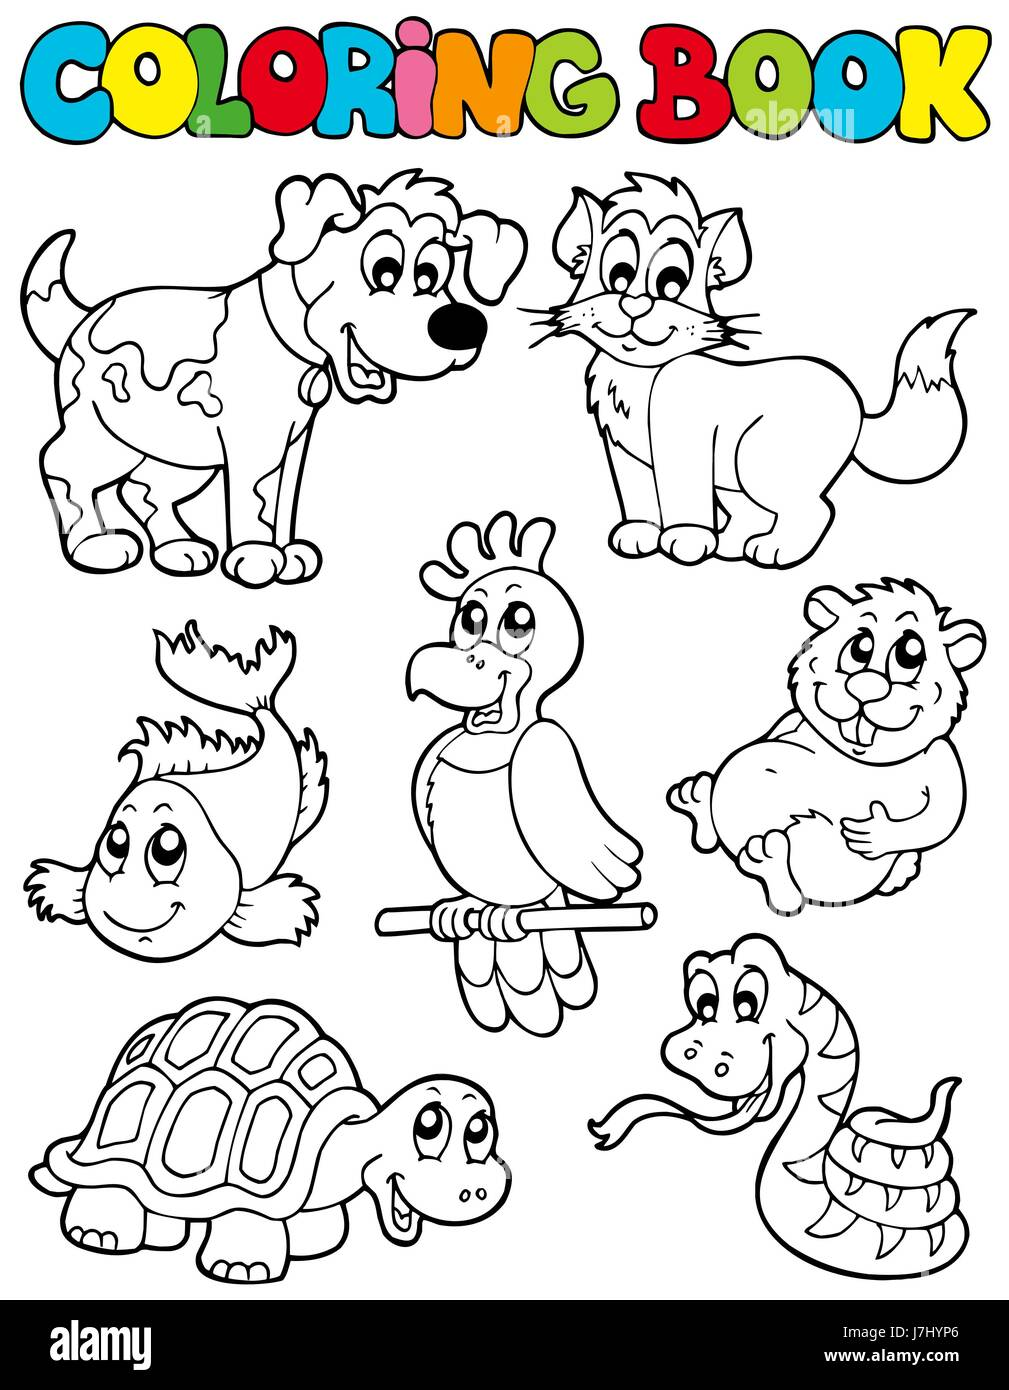 My Coloring Book: Animals Download